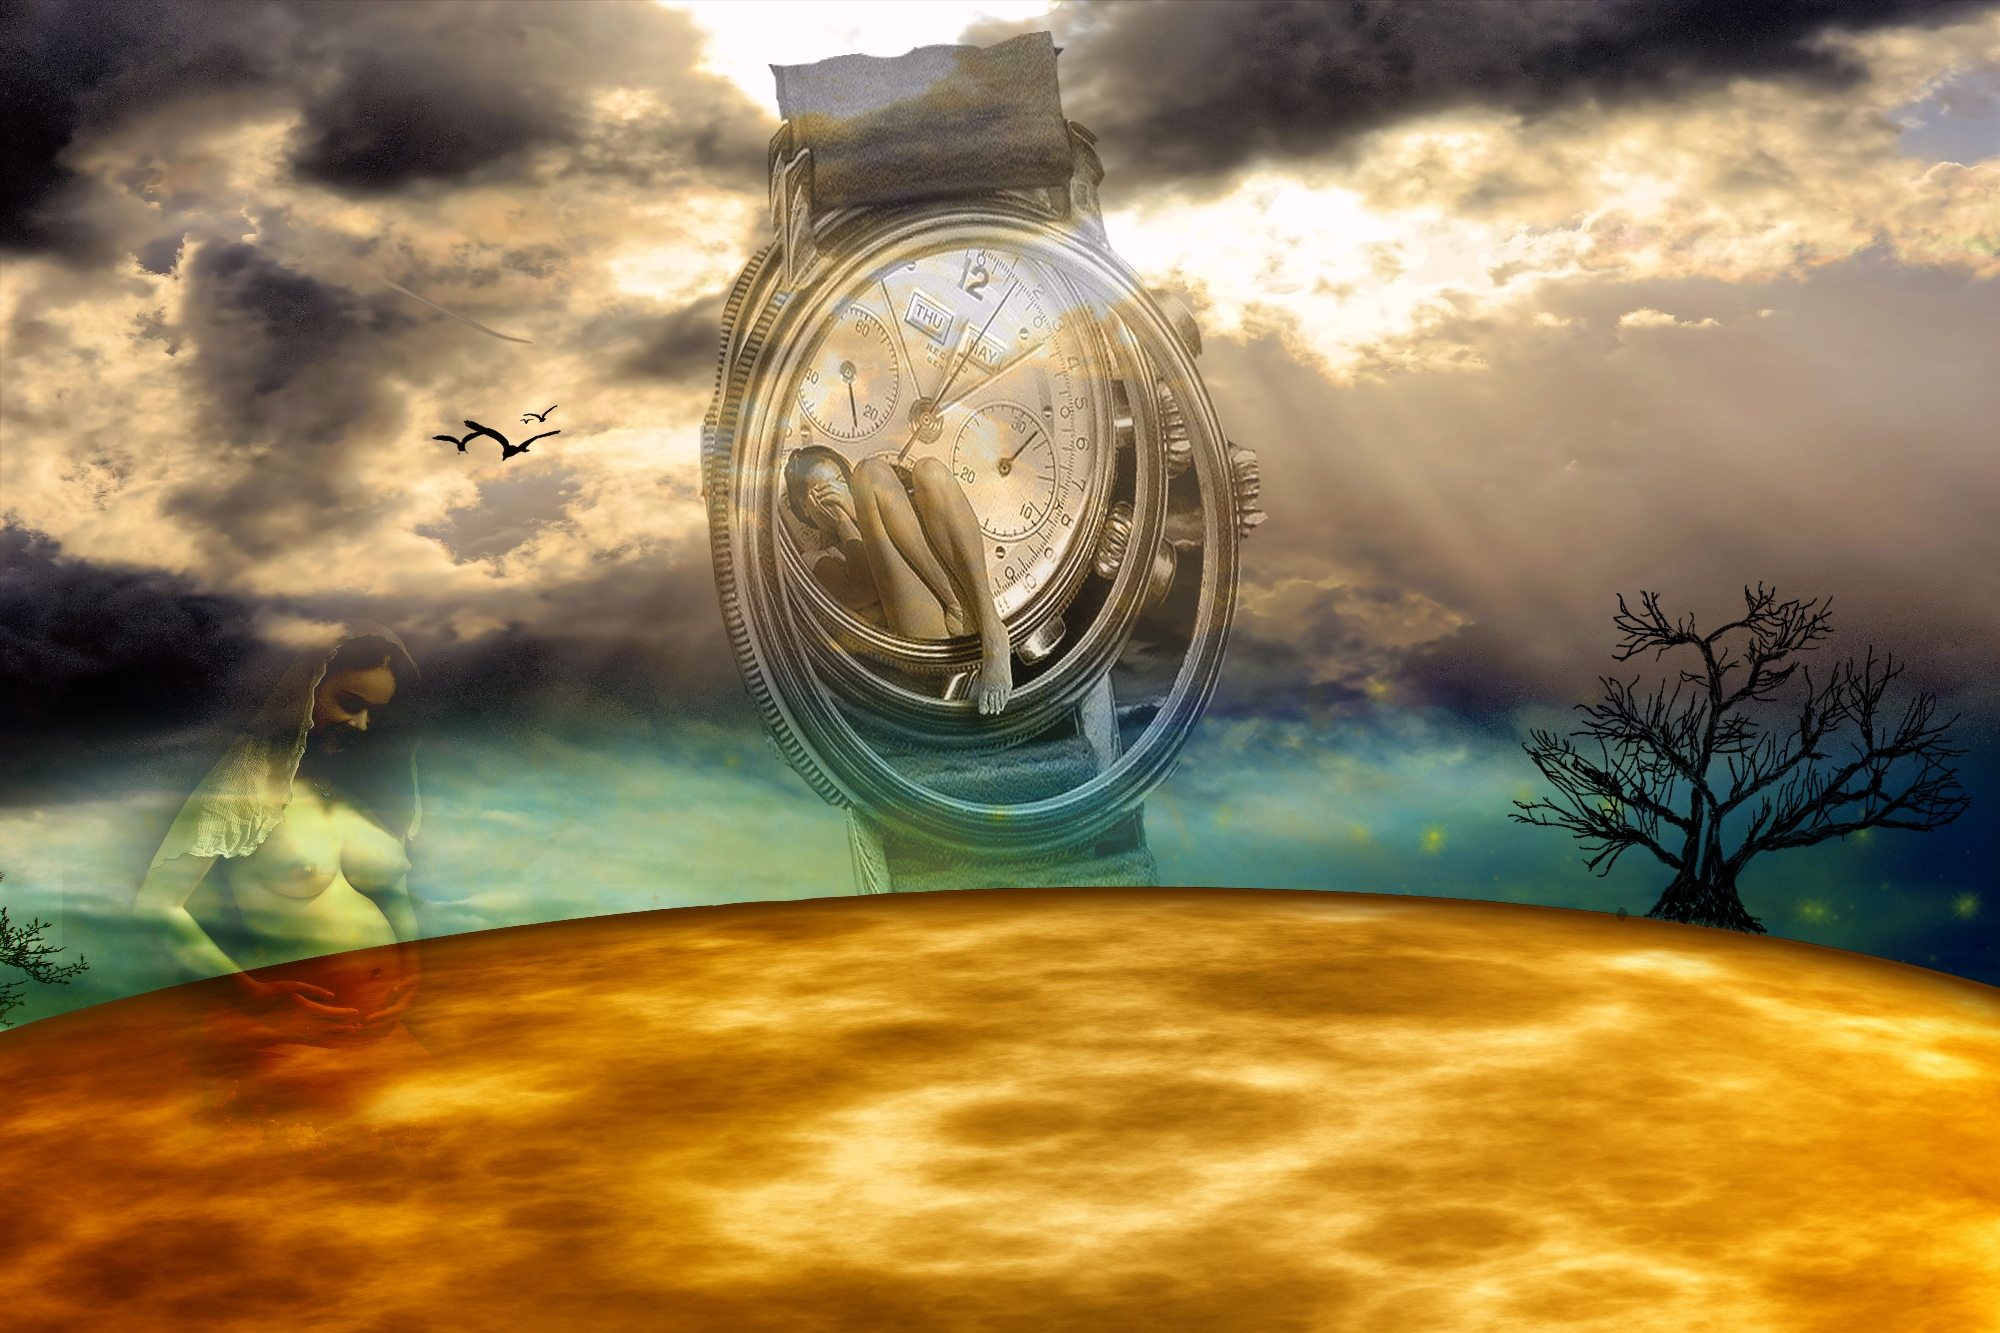 the time and the life .......